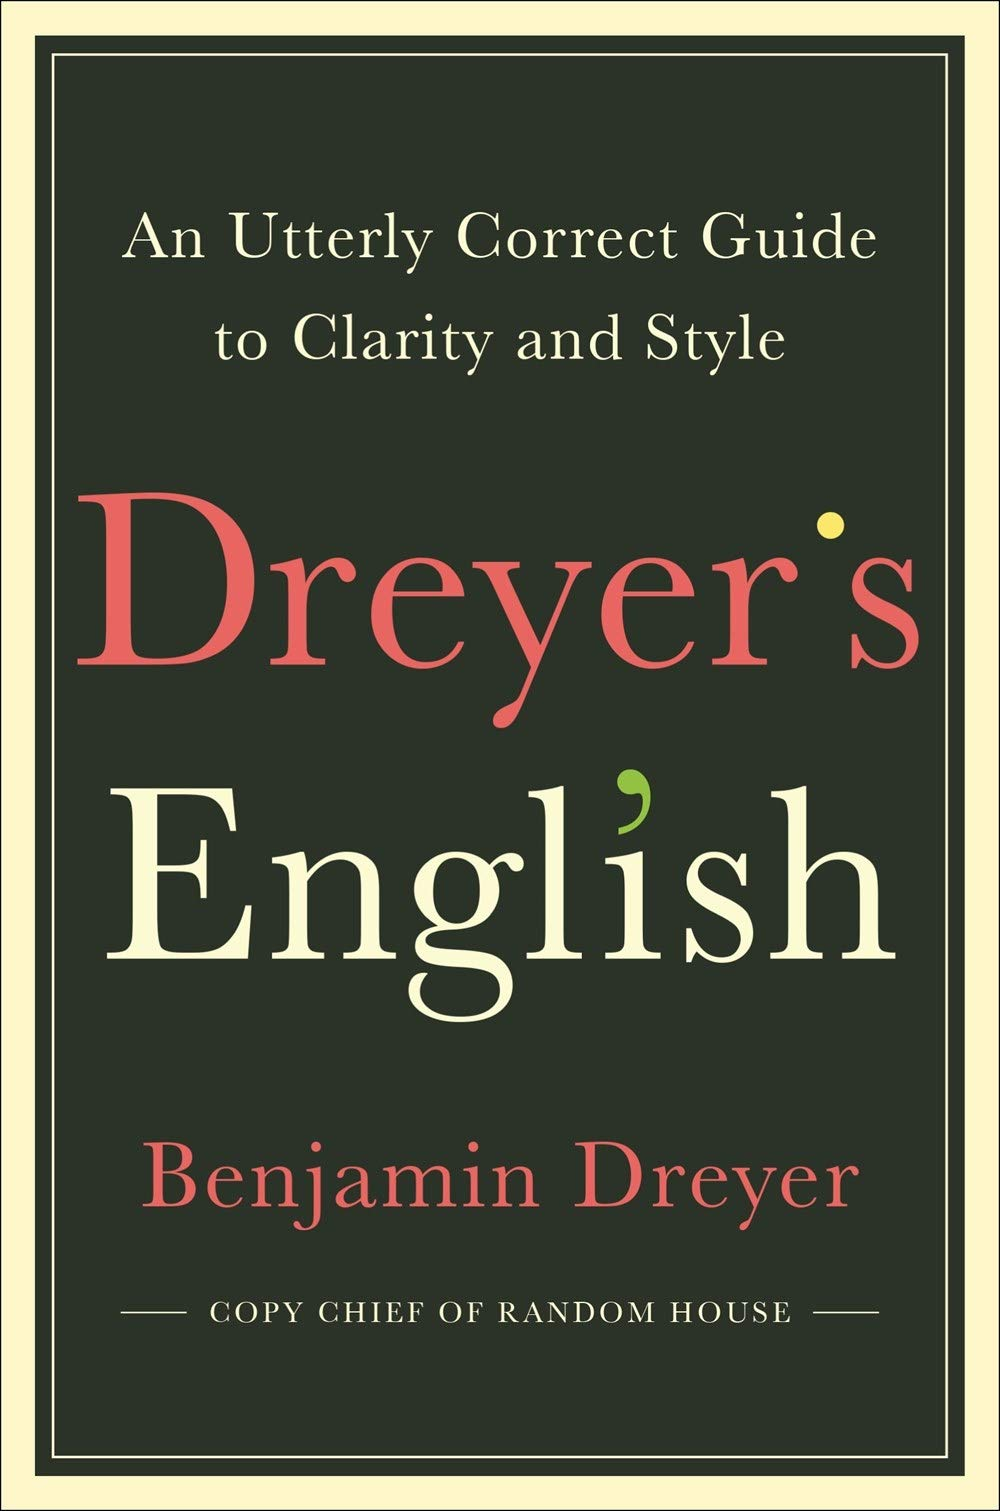 Buy Dreyers English Now!